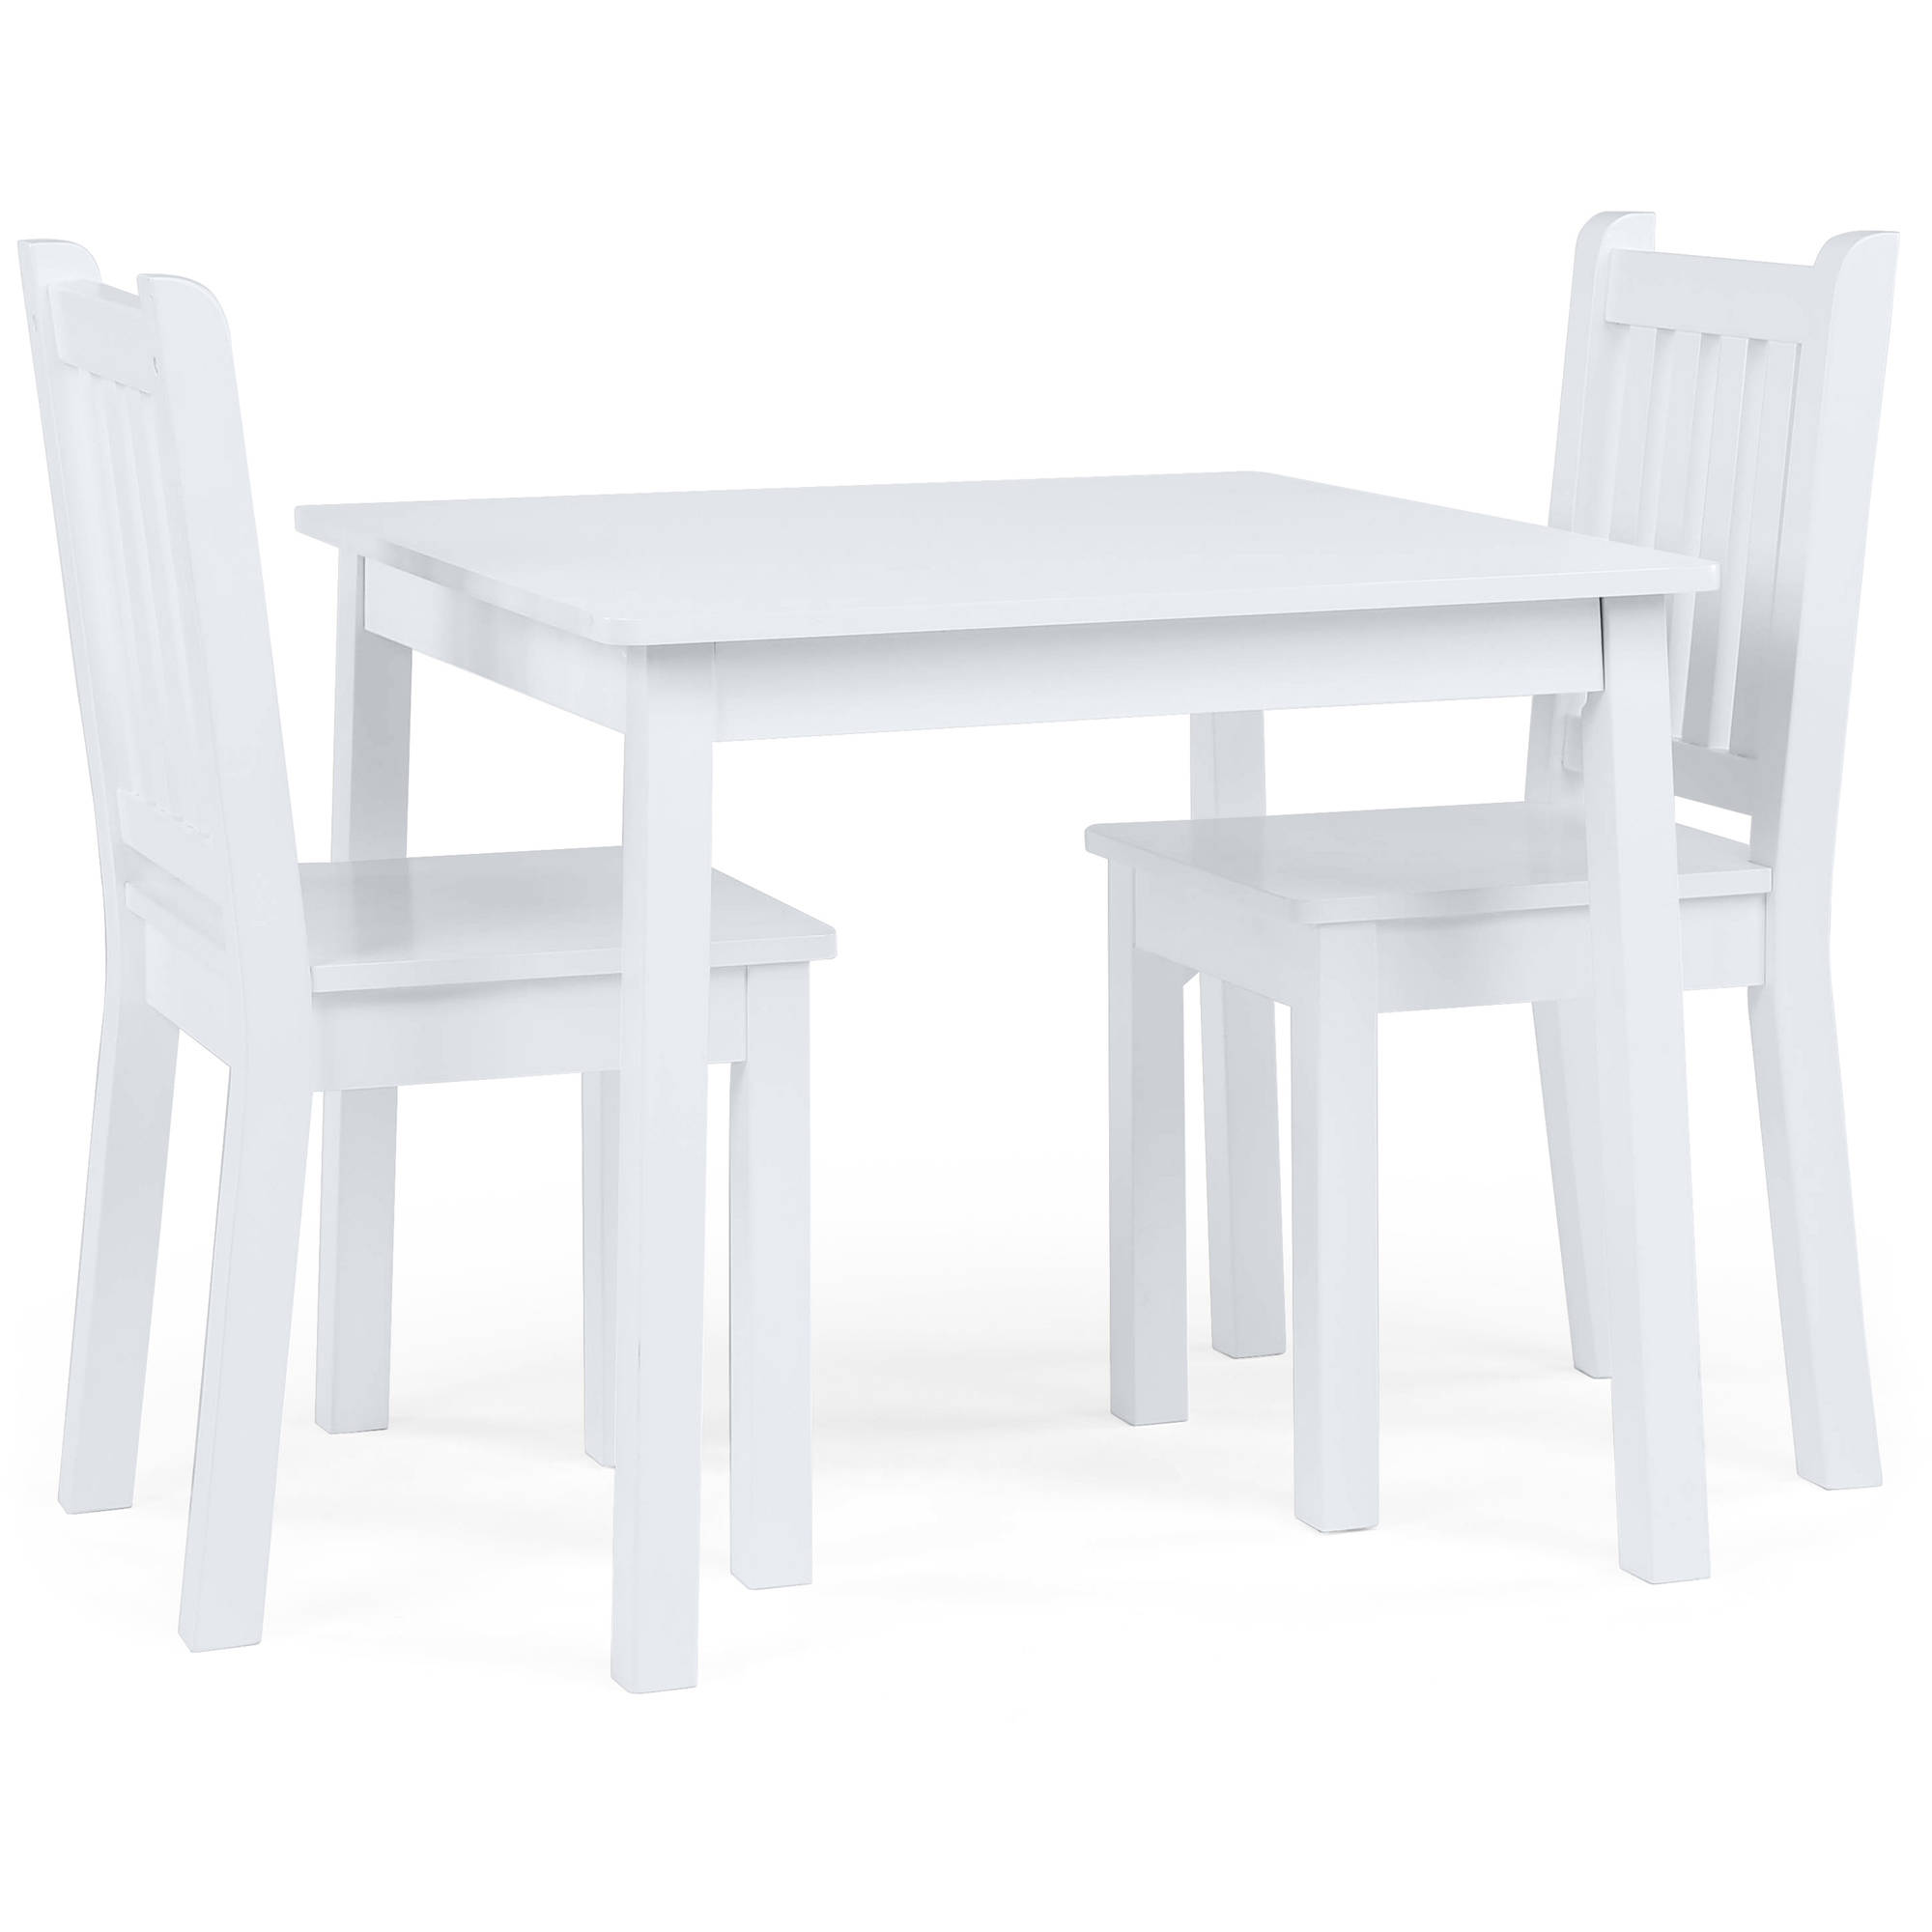 Tot Tutors Kids Wood Table And 2 Chairs Set, White (Daylight)